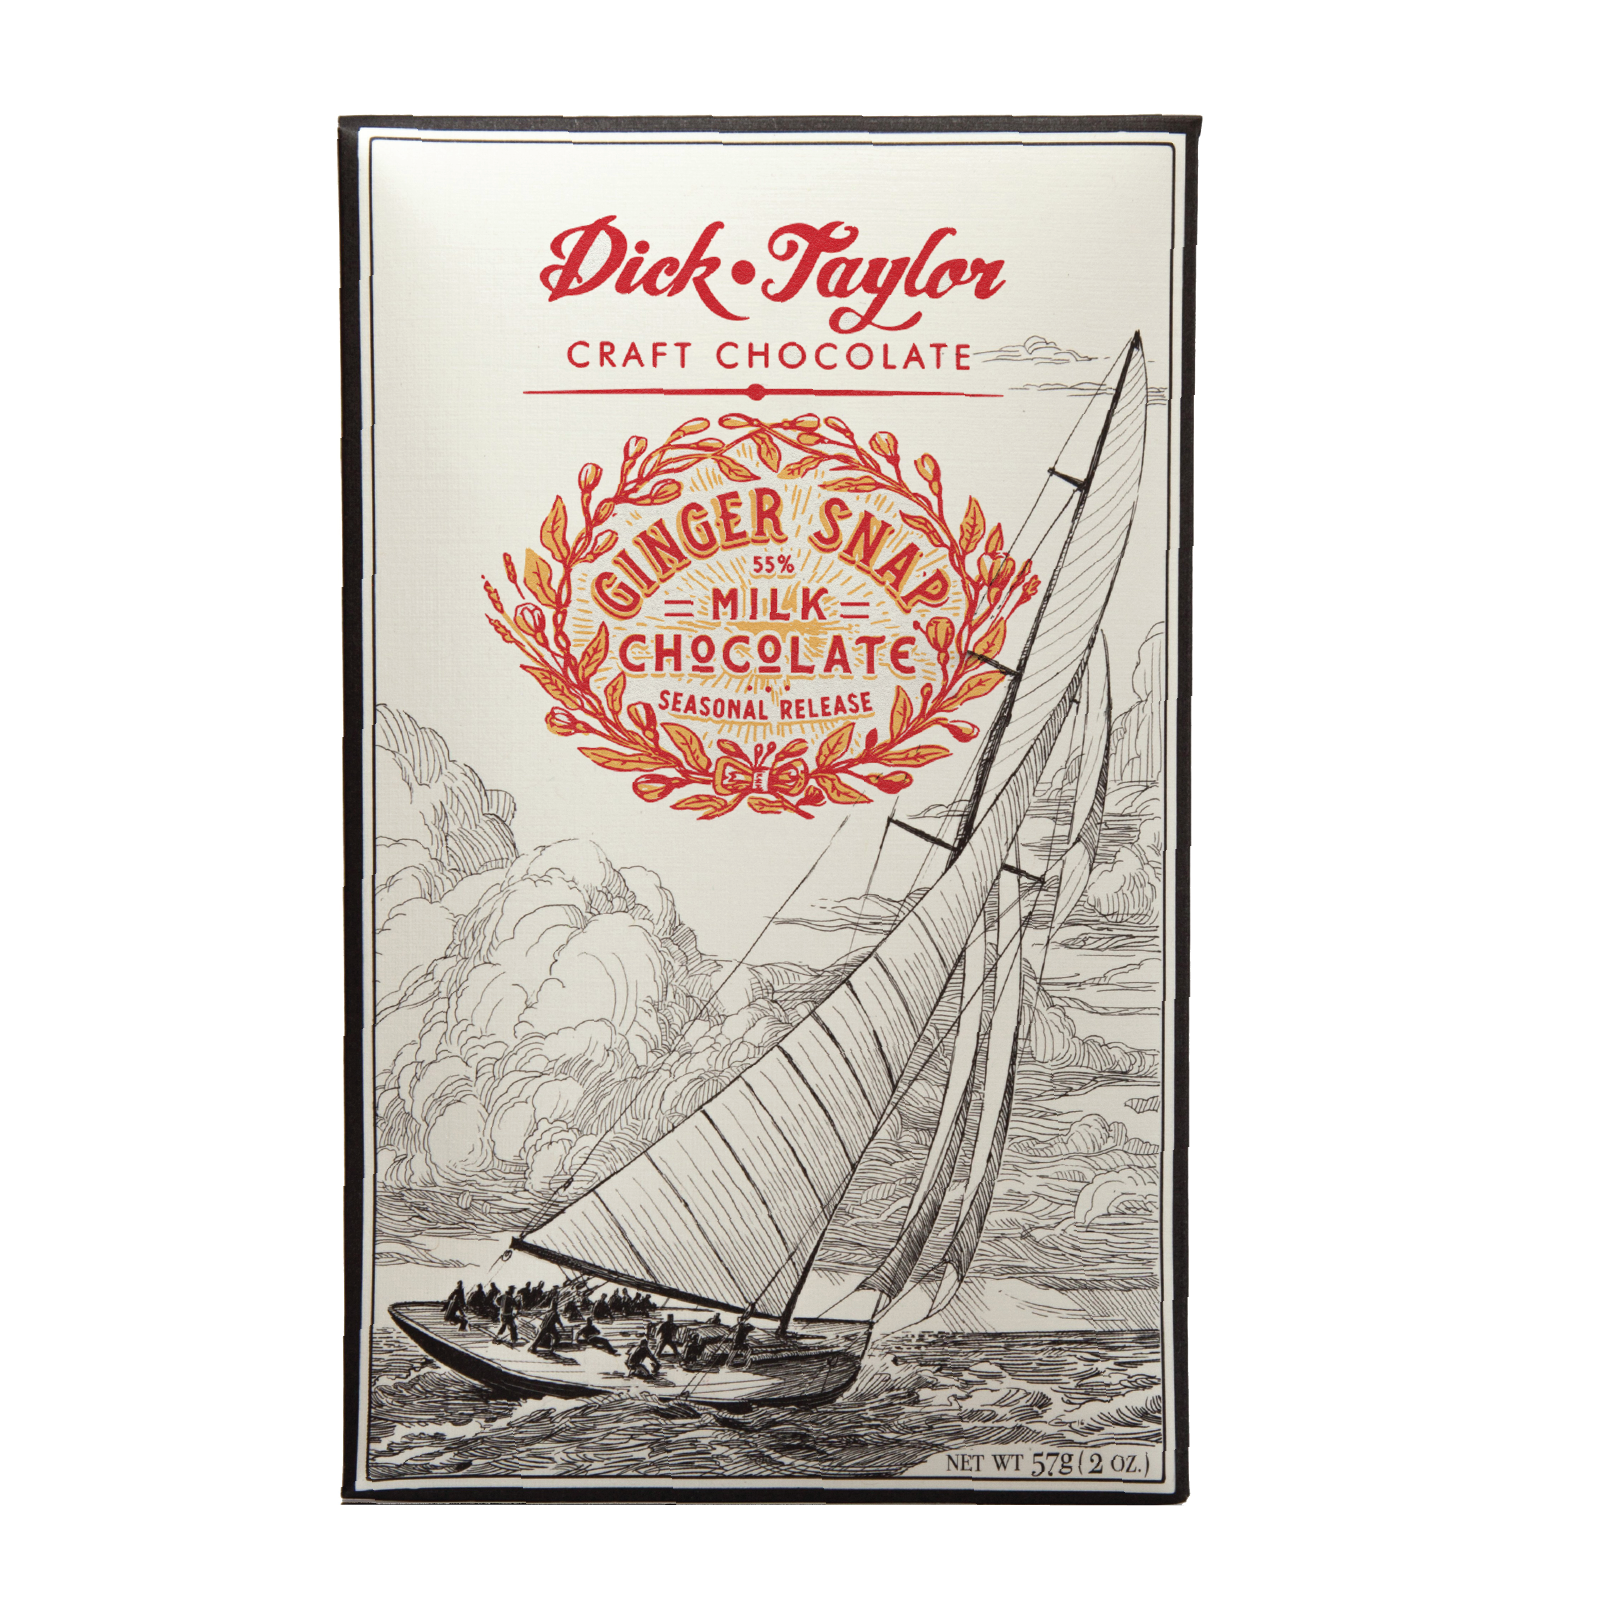 Dick Taylor Ginger Snap Milk Chocolate